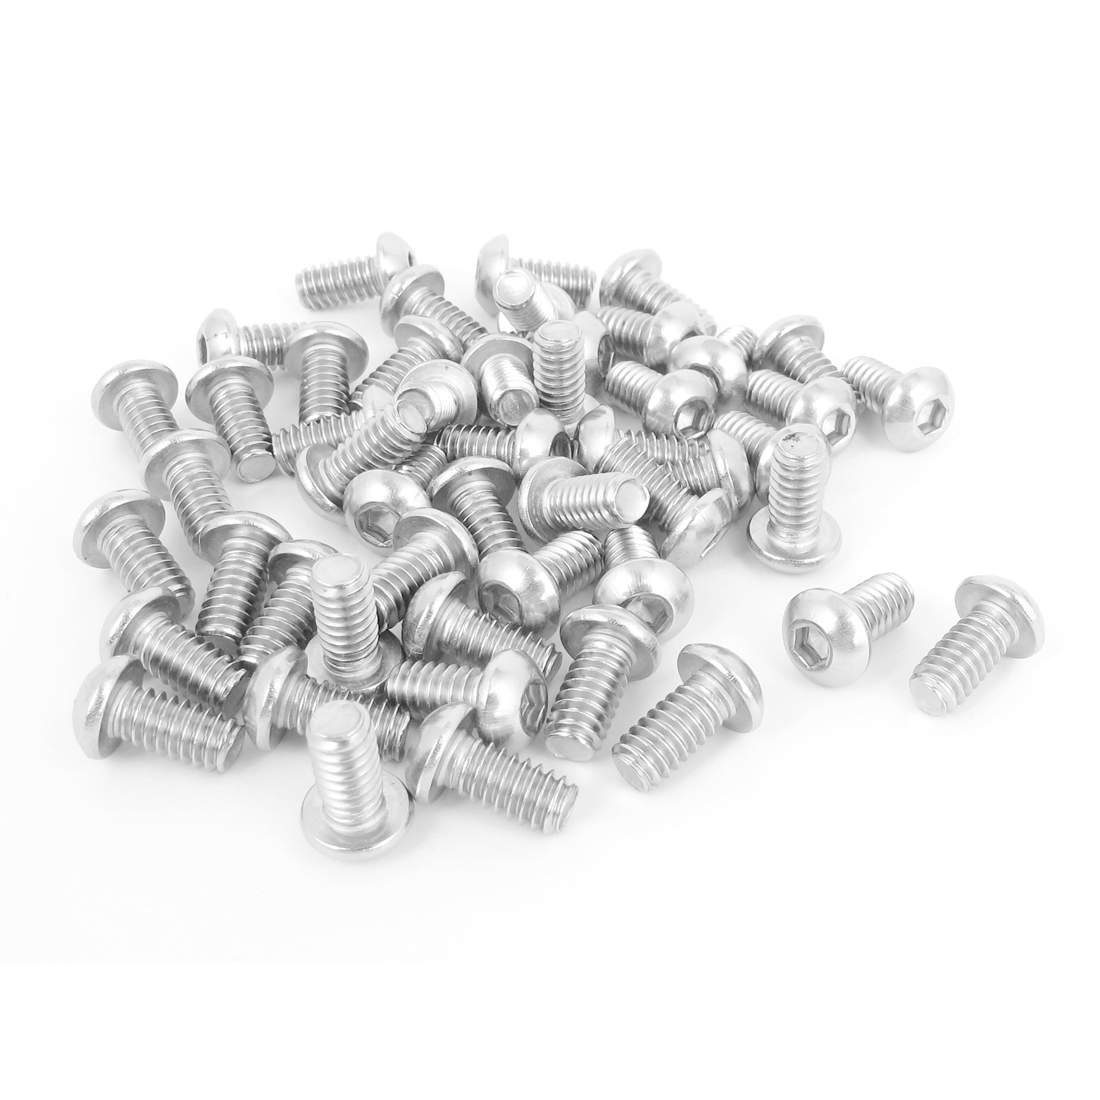 "50pcs 1/4""-20x1/2"" Stainless Steel Hex Socket Button Head Bolts Screws"